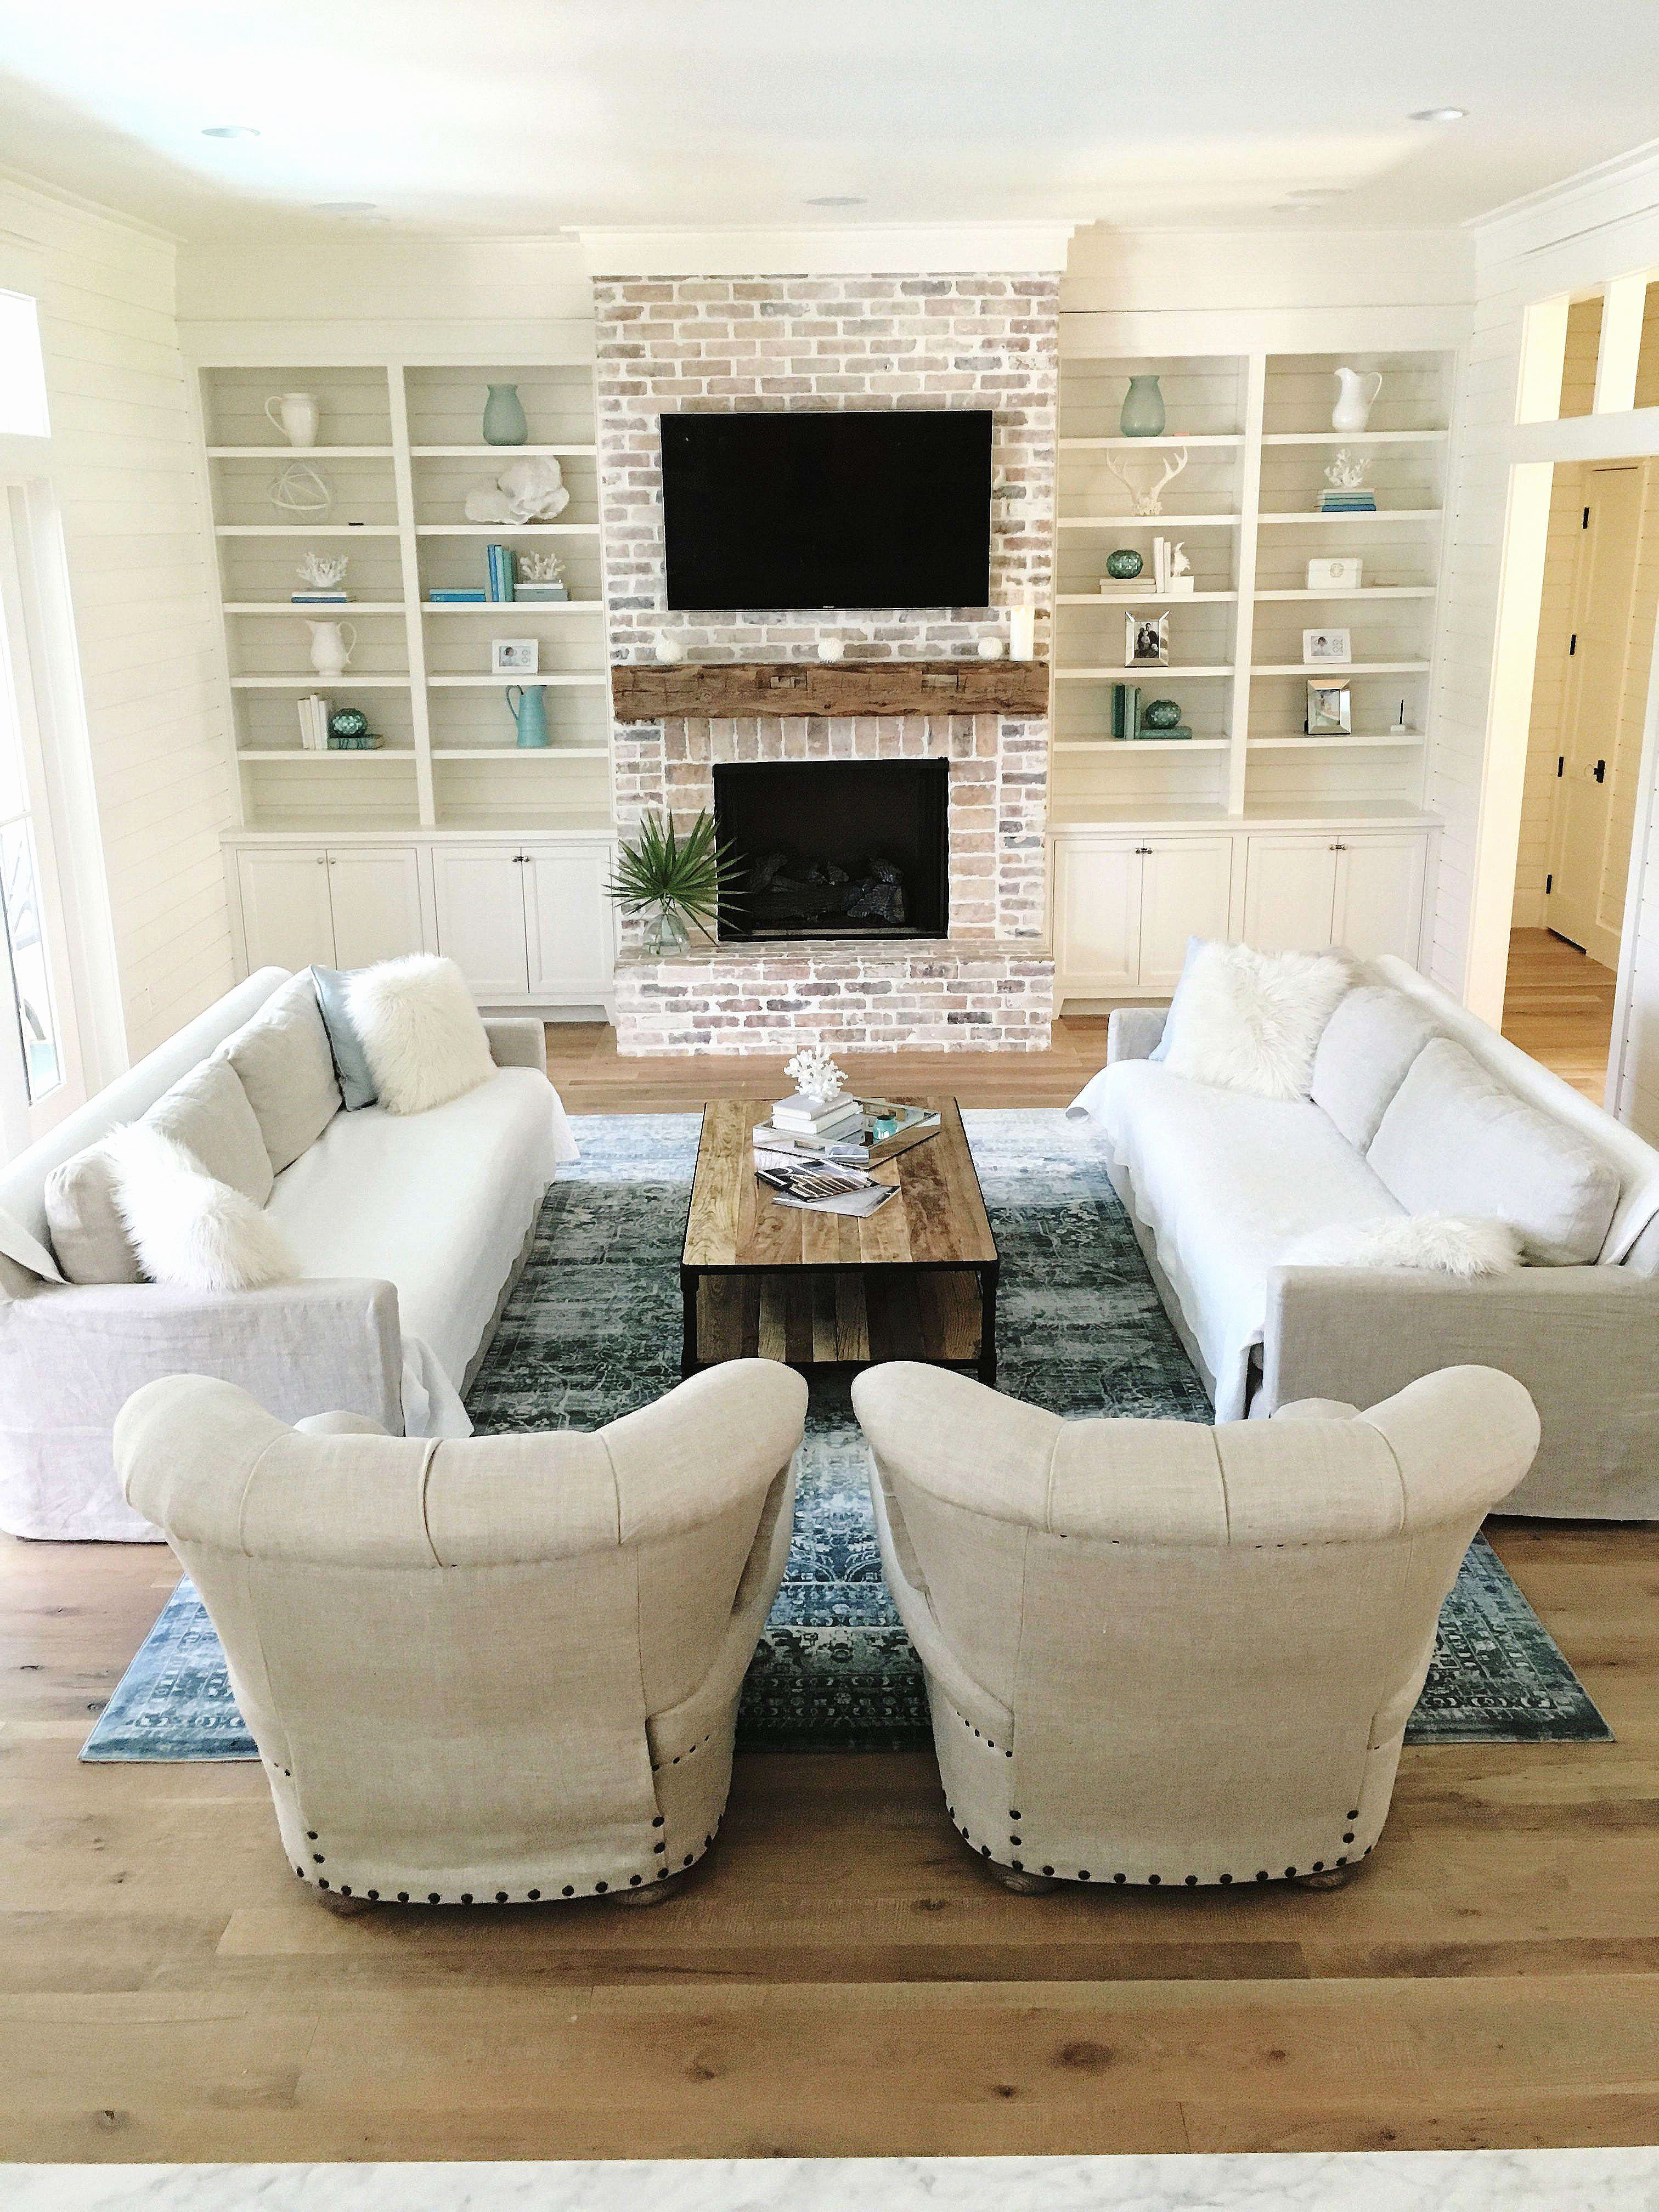 19 Trendy Home Decor Floor Vases 2021 free download home decor floor vases of decoration 1 an beau dollar tree wedding decorations awesome h vases with regard to decoration 1 an beau wall decal luxury 1 kirkland wall decor home design 0d outd